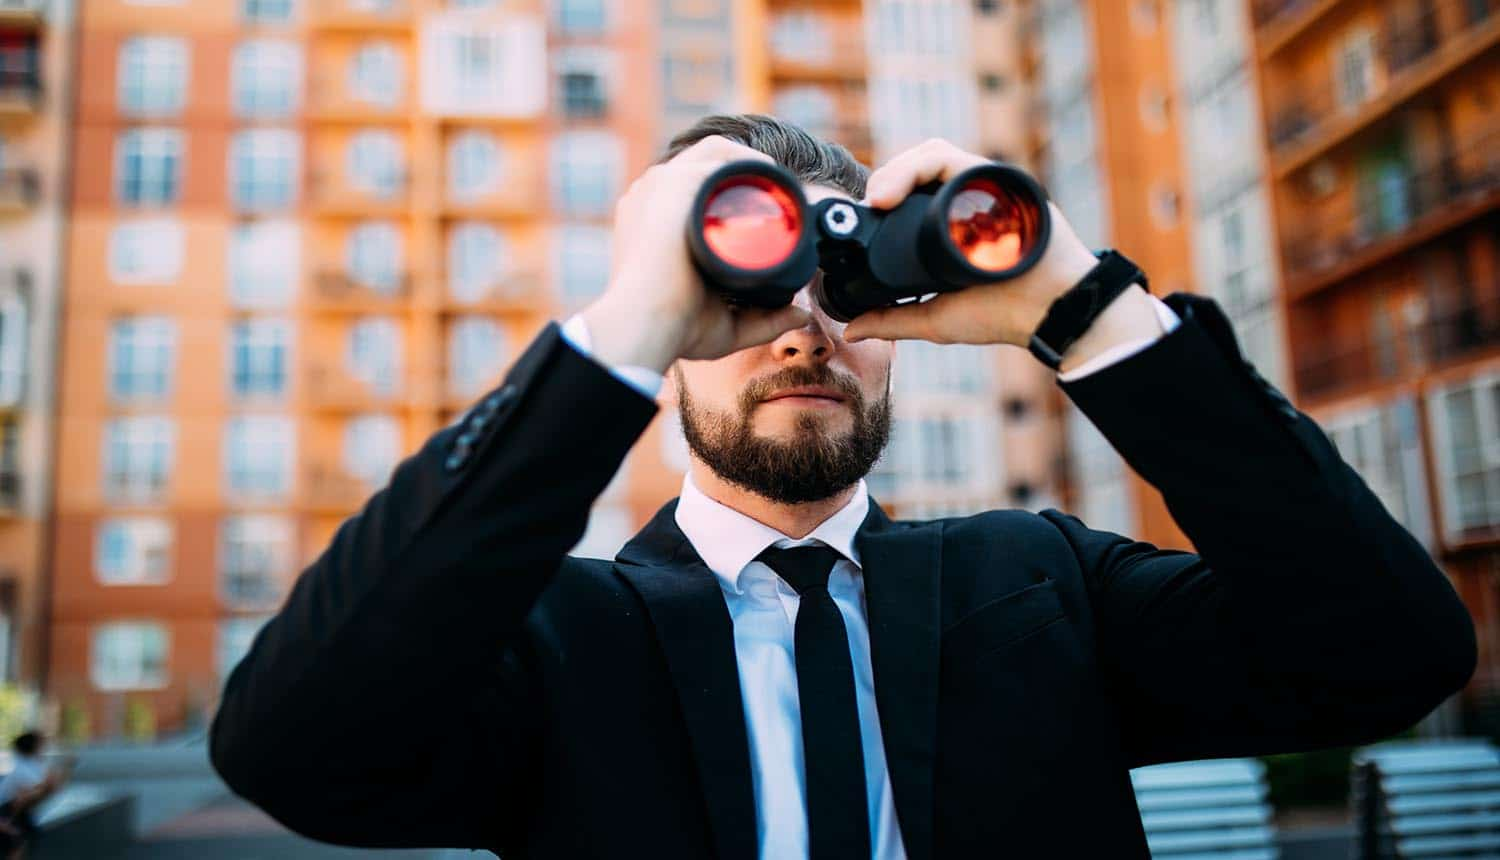 Businessman with binoculars spying on users, invasion of privacy by tracking online behavior